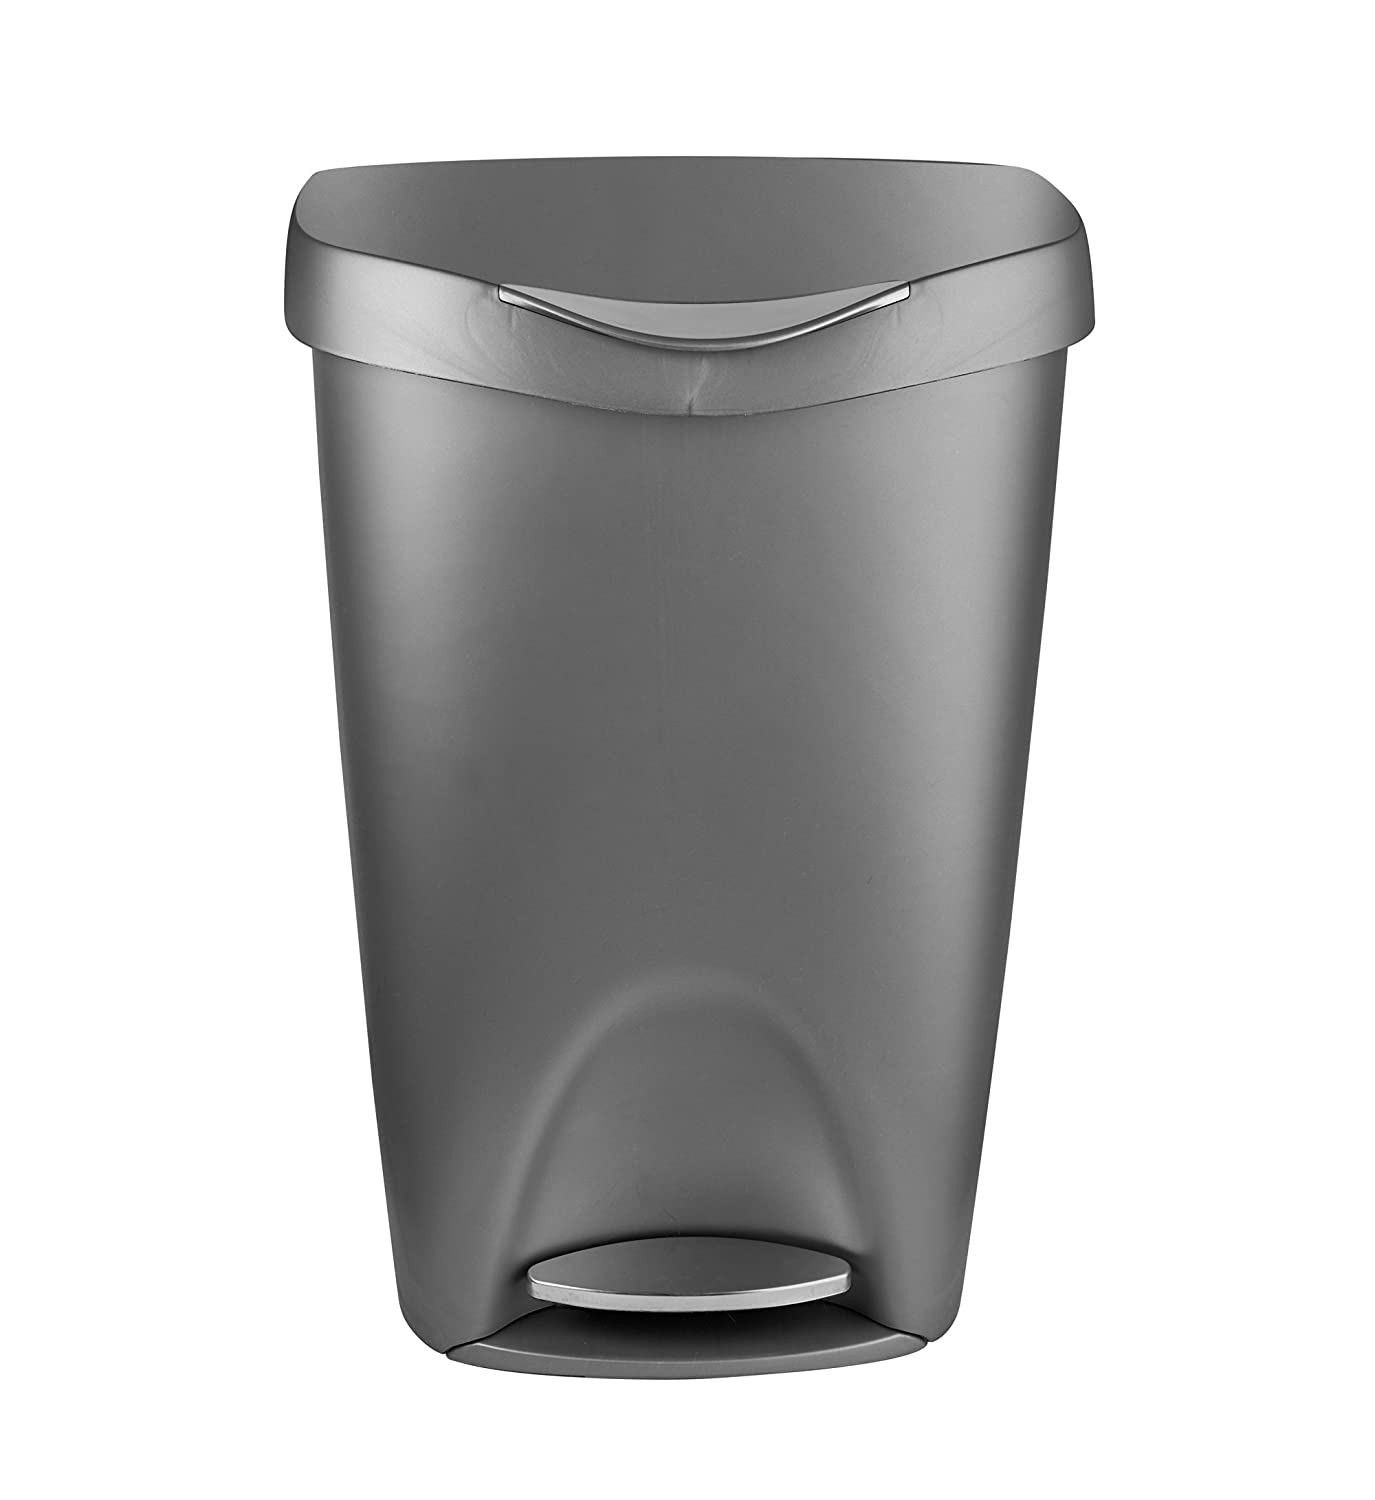 Amazoncom Umbra Brim 13 Gallon Trash Can With Lid Large Kitchen